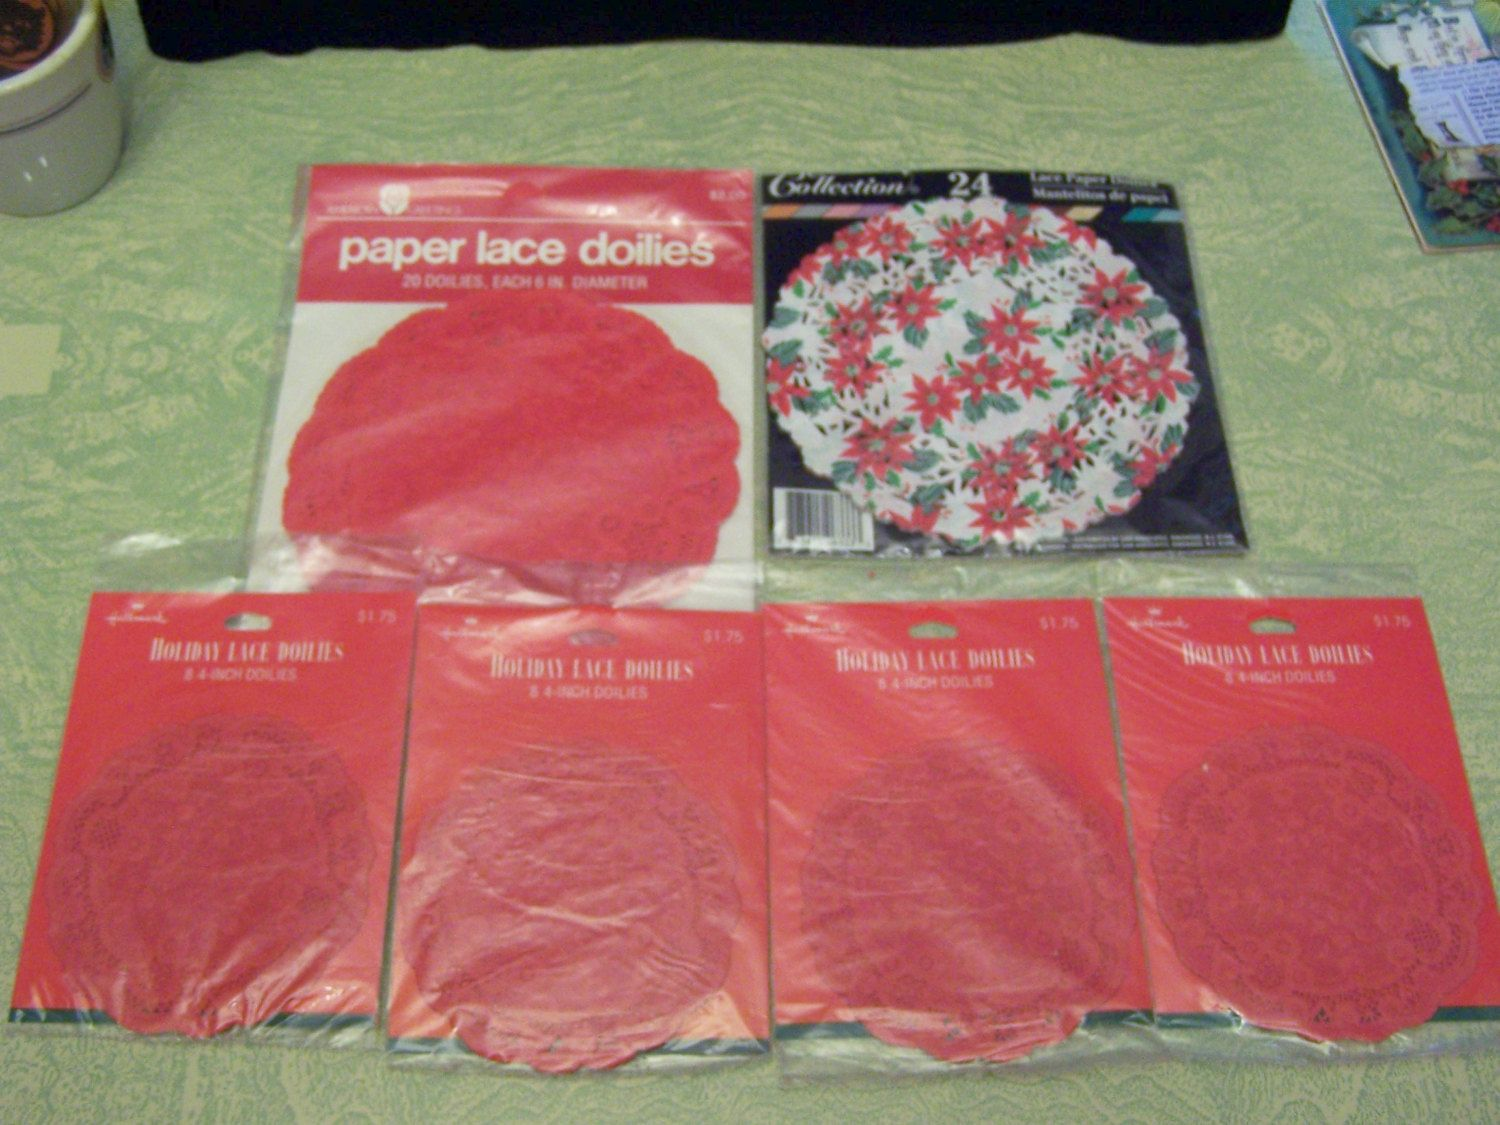 American greetings hallmark christmas holiday red lace paper doilies american greetings hallmark christmas holiday red lace paper doilies original packages poinsettias by biggdesigns on etsy kristyandbryce Choice Image